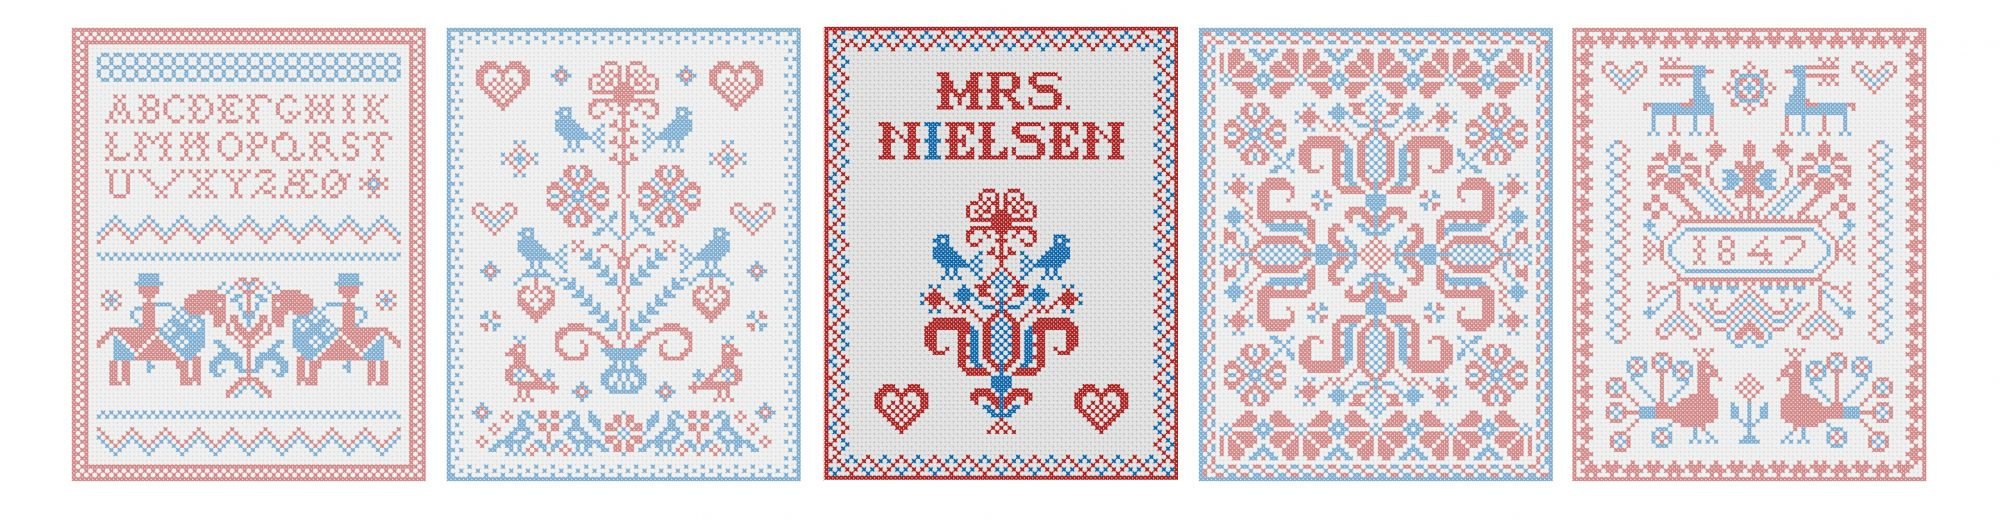 Scandinavian Embroidery Patterns A New Year And Some Thoughts Mrs Nielsen Embroidery